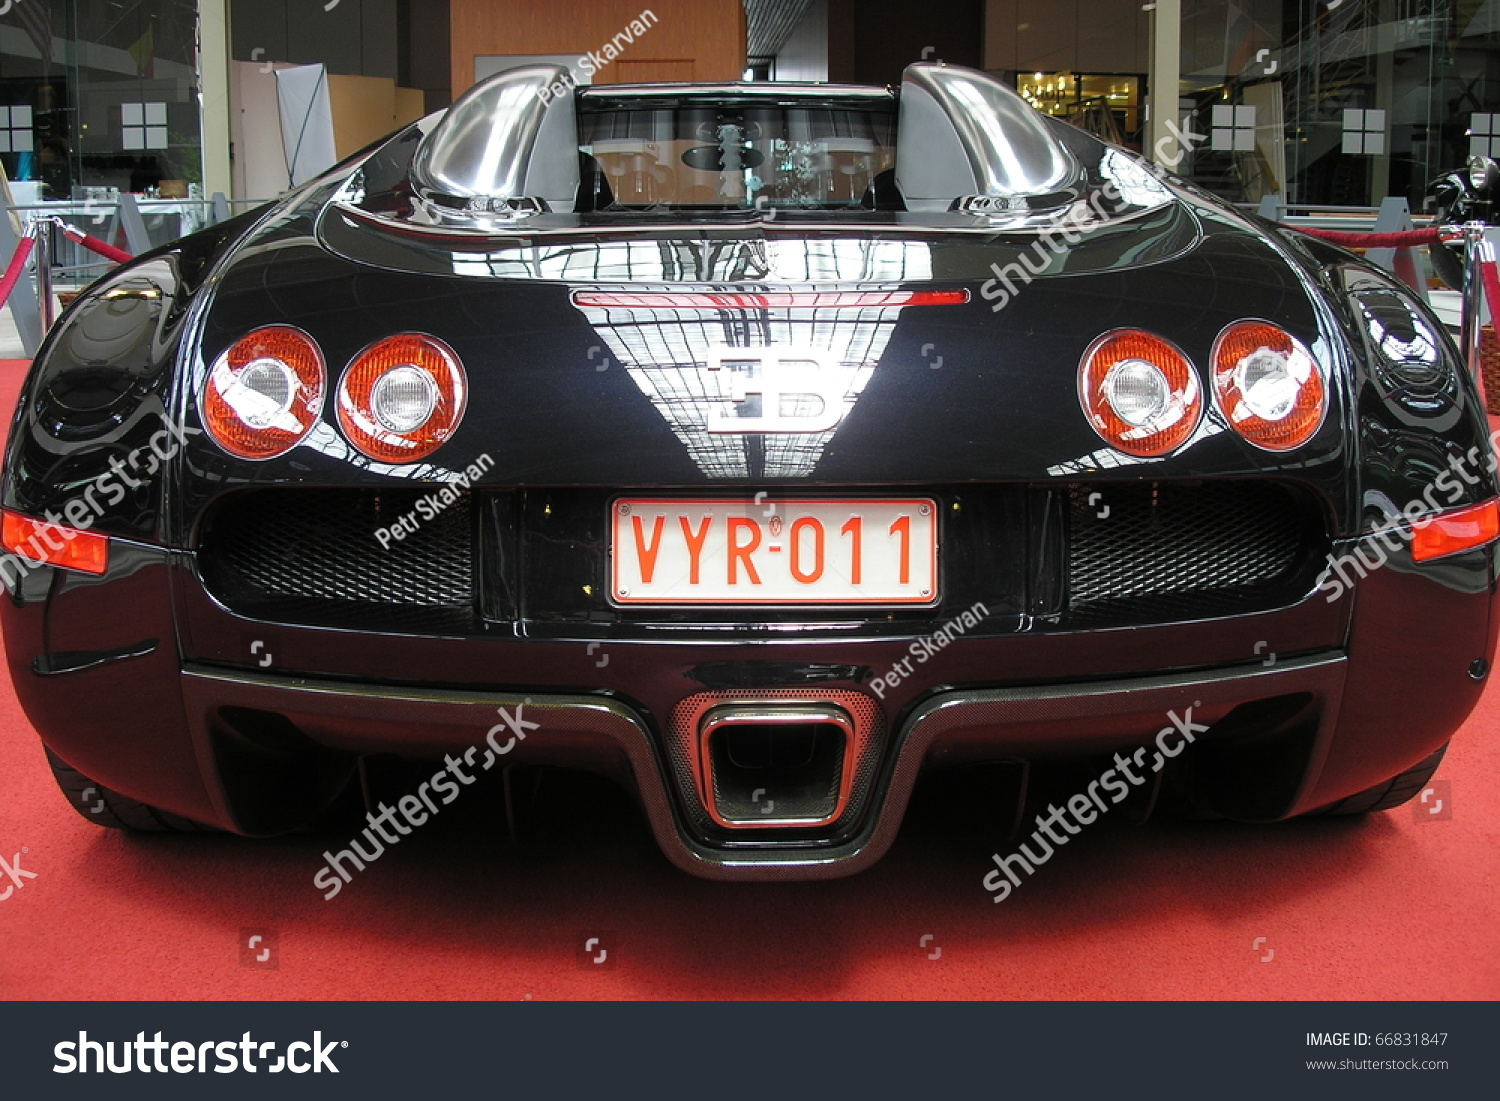 brussels belgium may 10 bugatti veyron stands on red carpet in autoworld. Black Bedroom Furniture Sets. Home Design Ideas